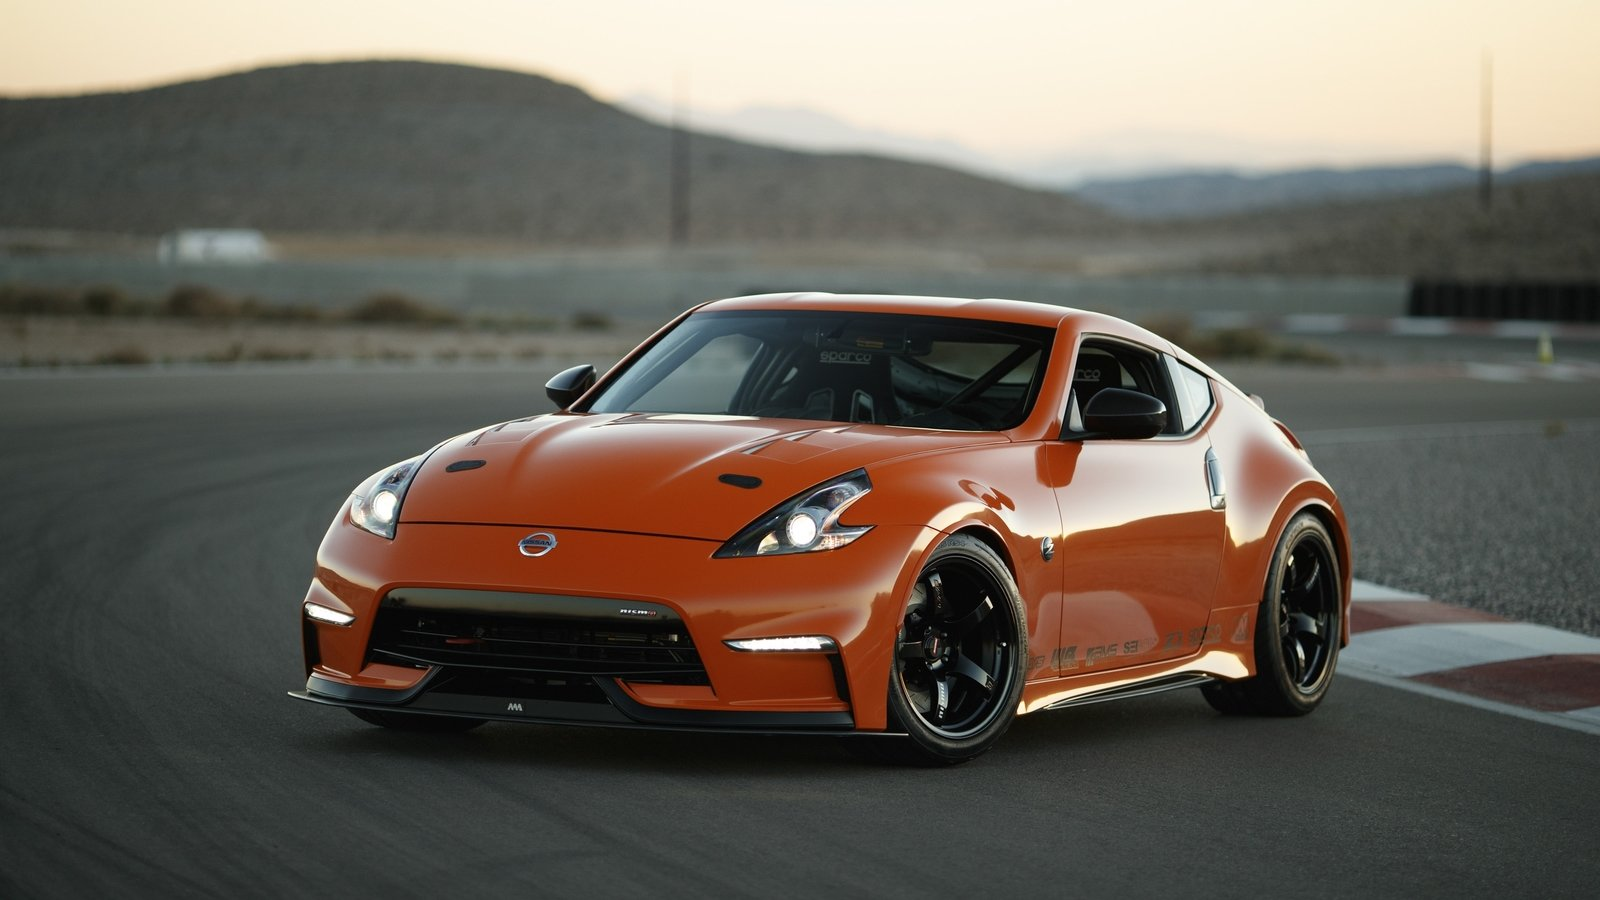 2018 Nissan Project Clubsport 23 | Top Speed